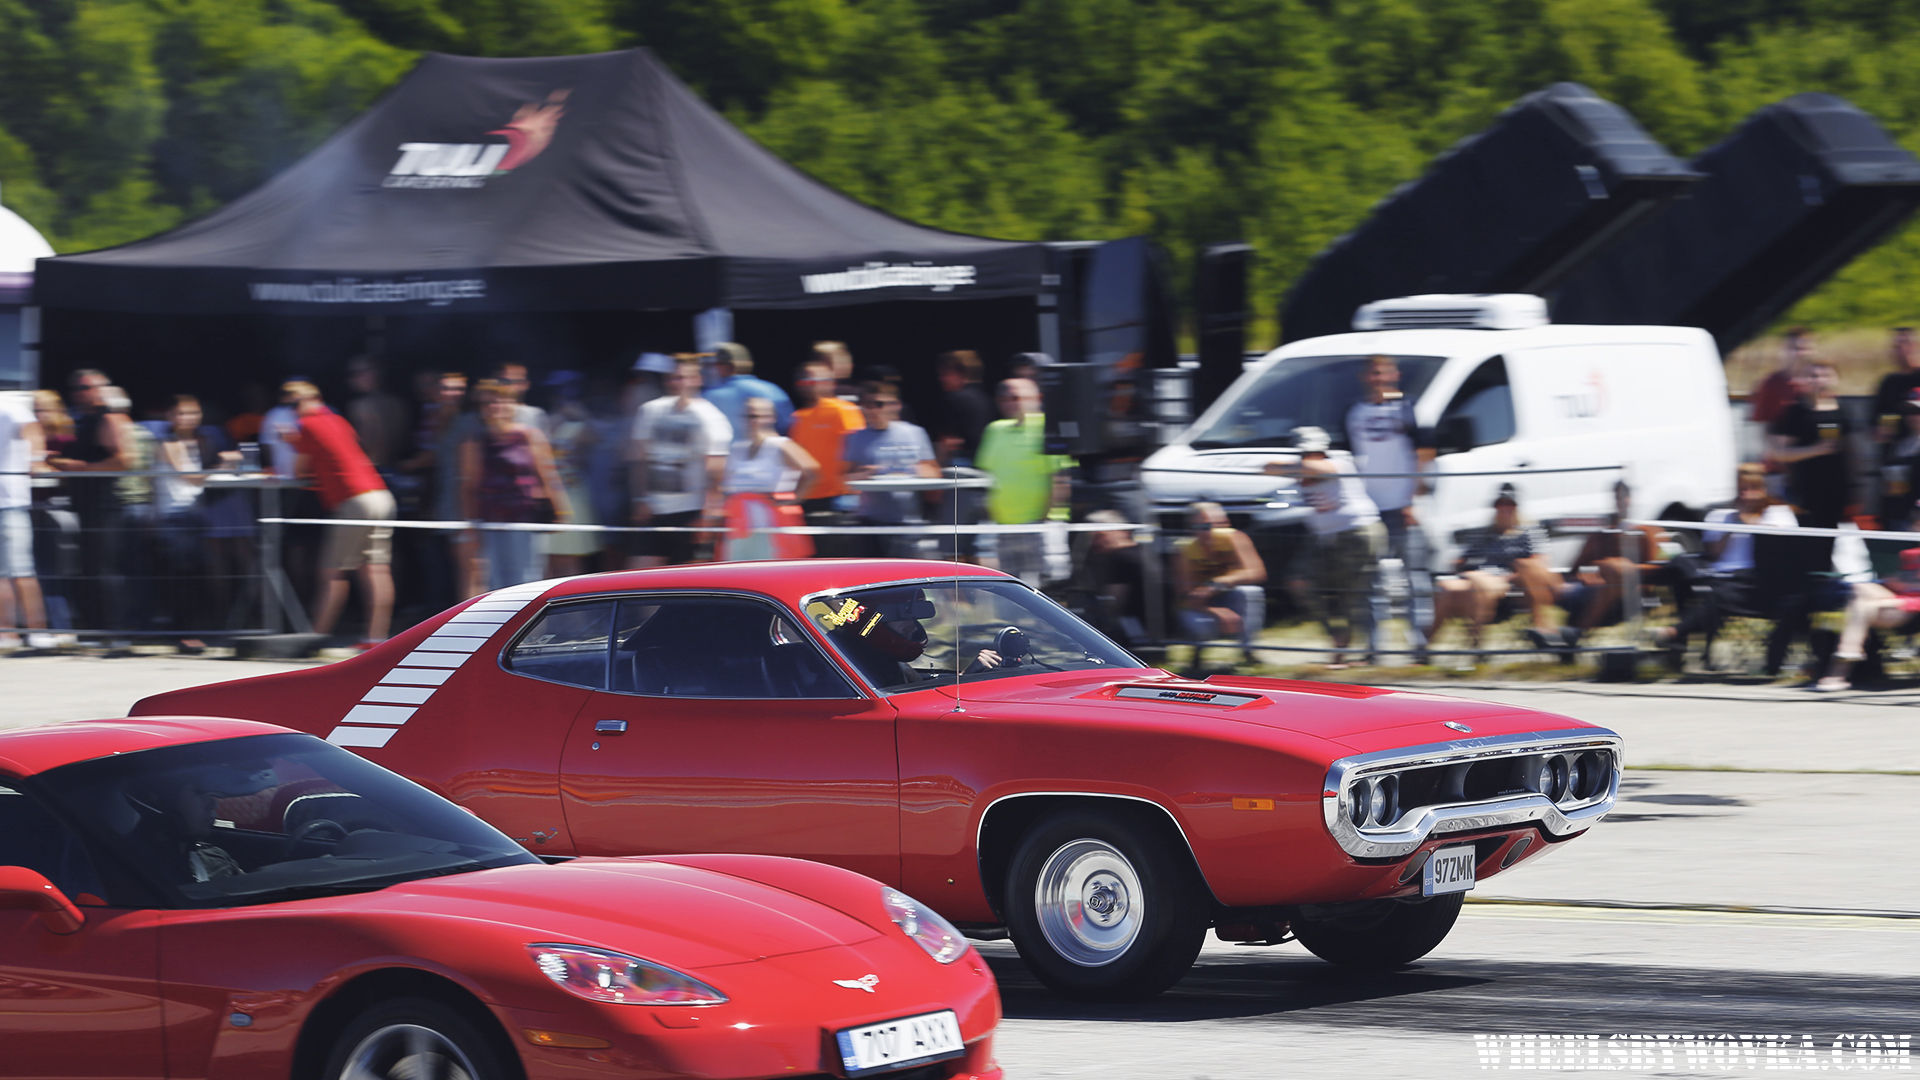 american-beauty-car-show-2017-haapsalu-dragrace-by-wheelsbywovka-25